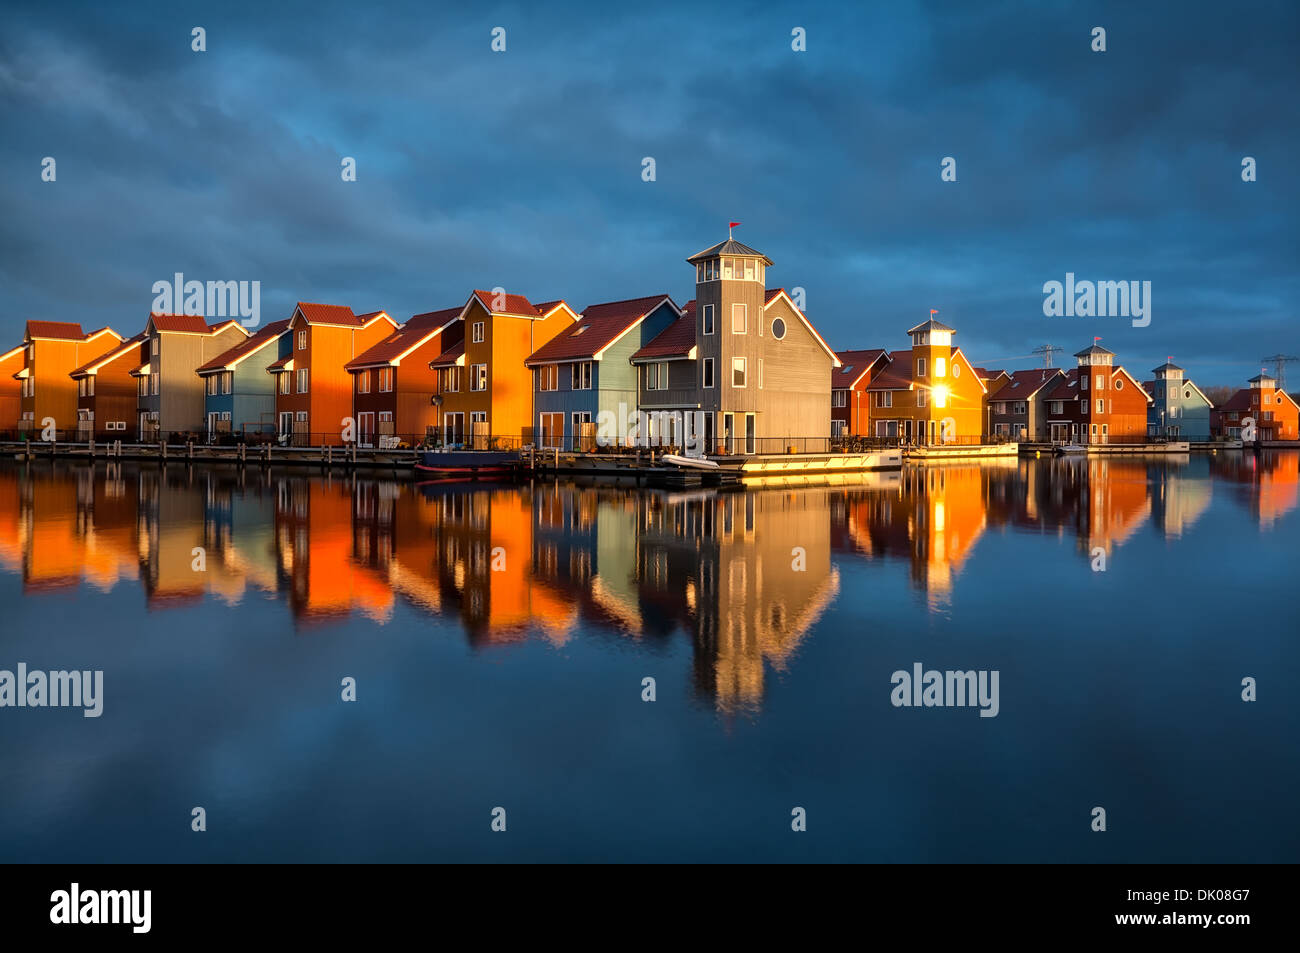 beautiful colorful buildings on water in gold sunshine, Reitdiephaven, Groningen, Netherlands Stock Photo